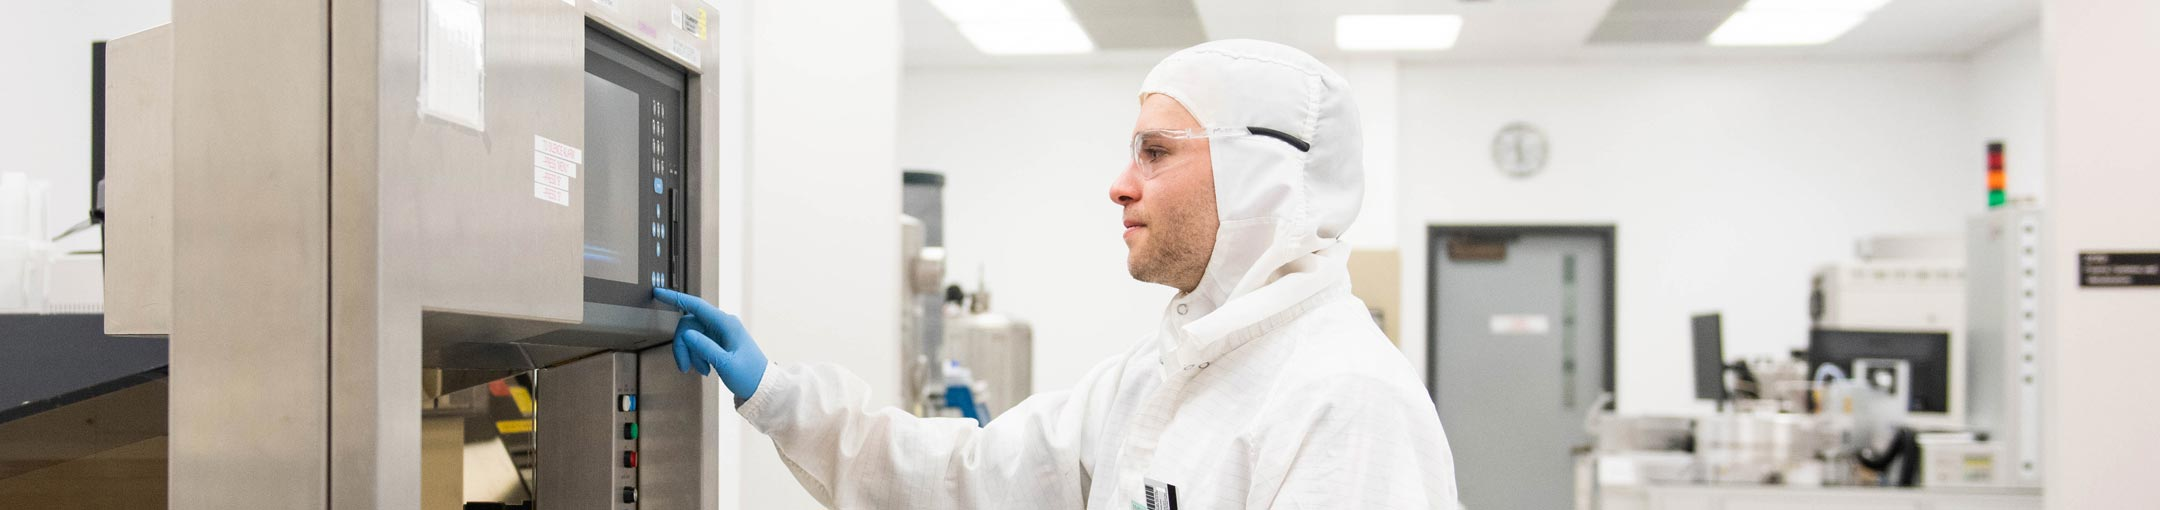 A student wearing a cleanroom suit presses a button on lab equipment